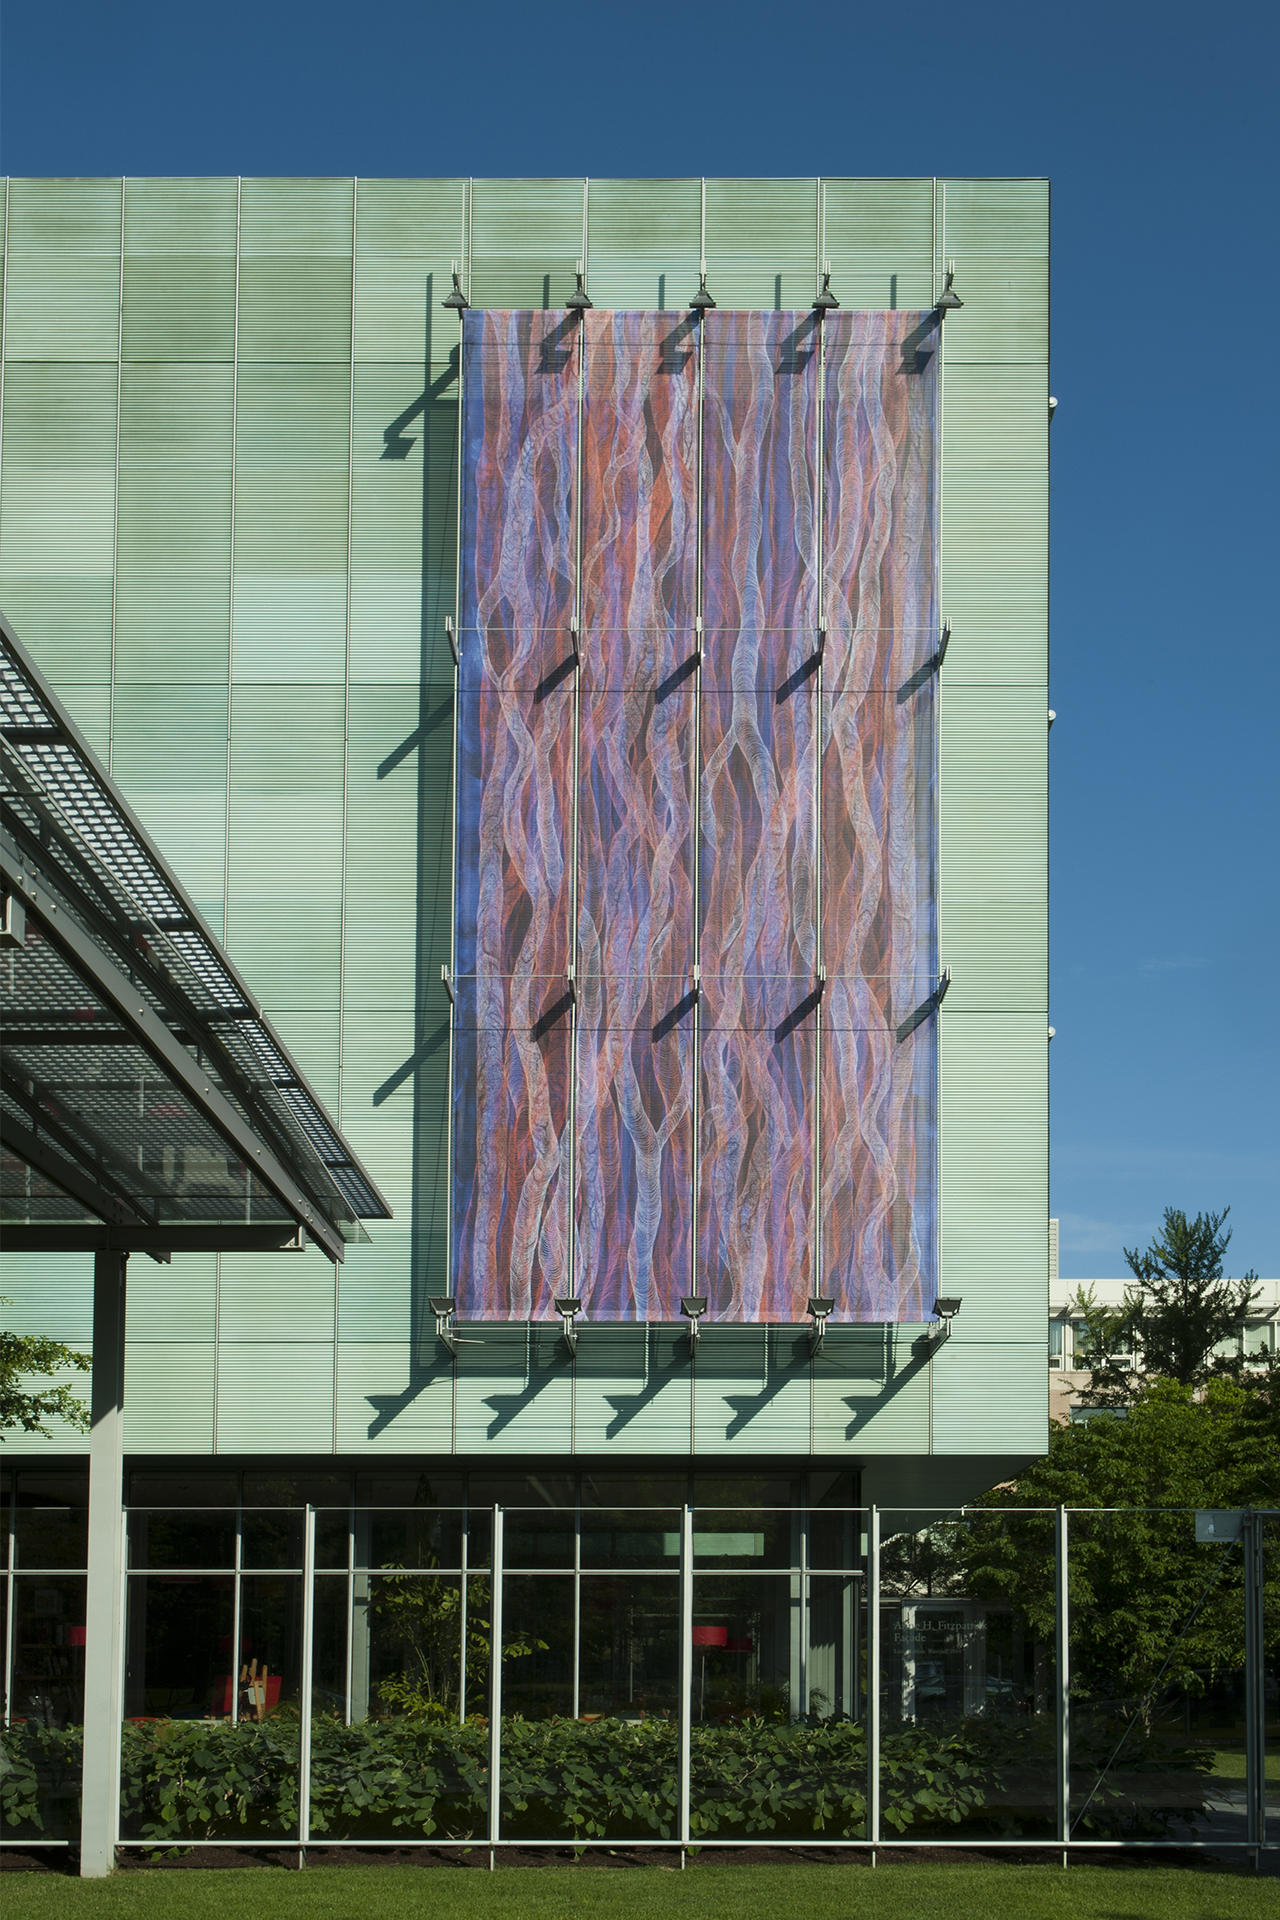 Luisa Rabbia: Waterfall on the Anne H. Fitzpatrick Façade on Evans Way